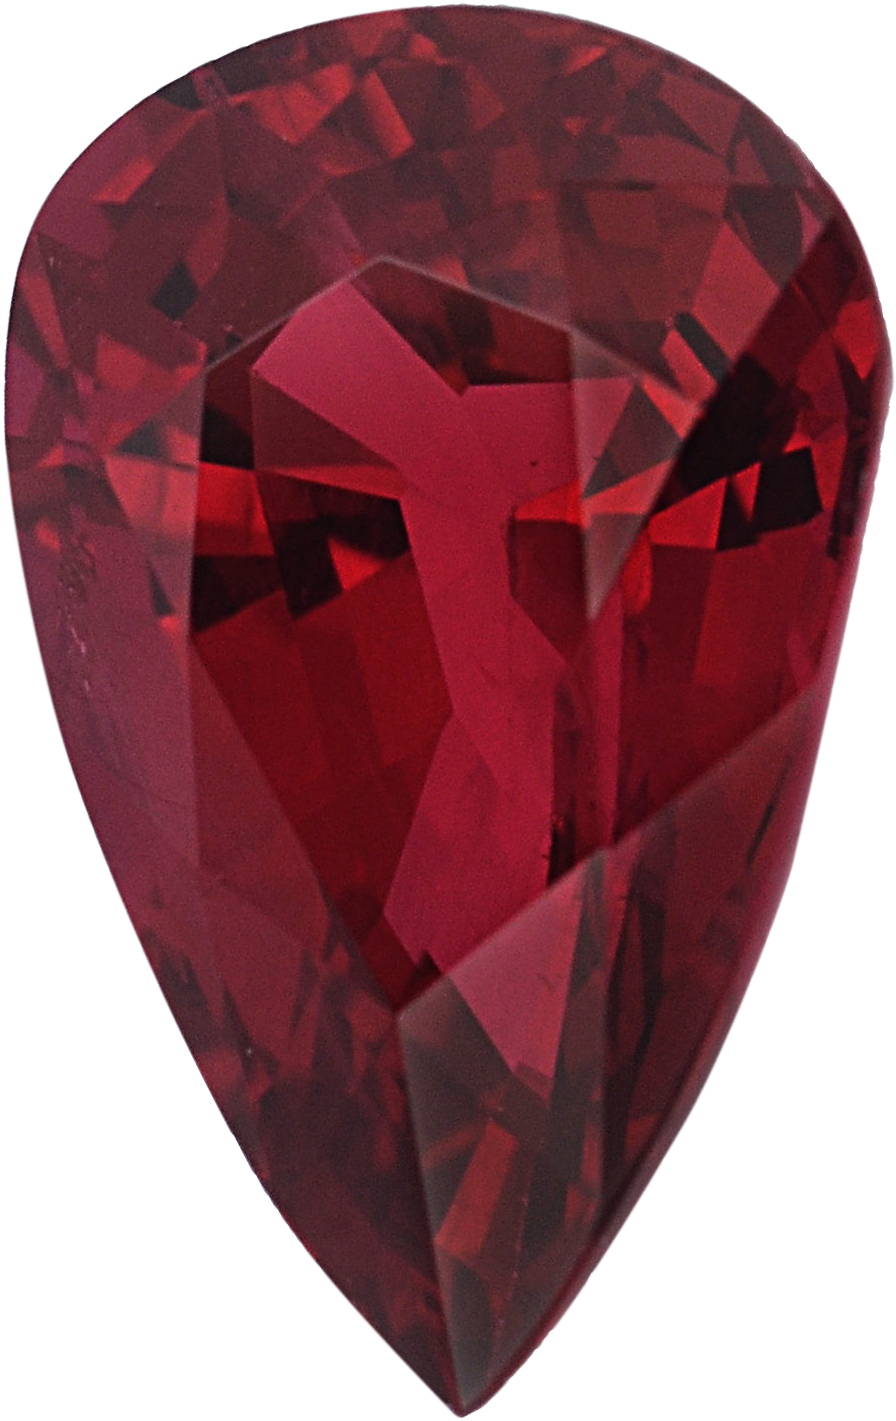 Unbelievable Pear Shape Loose Ruby Gem, Red Color, 7.22 x 4.82 mm, 0.91 carats